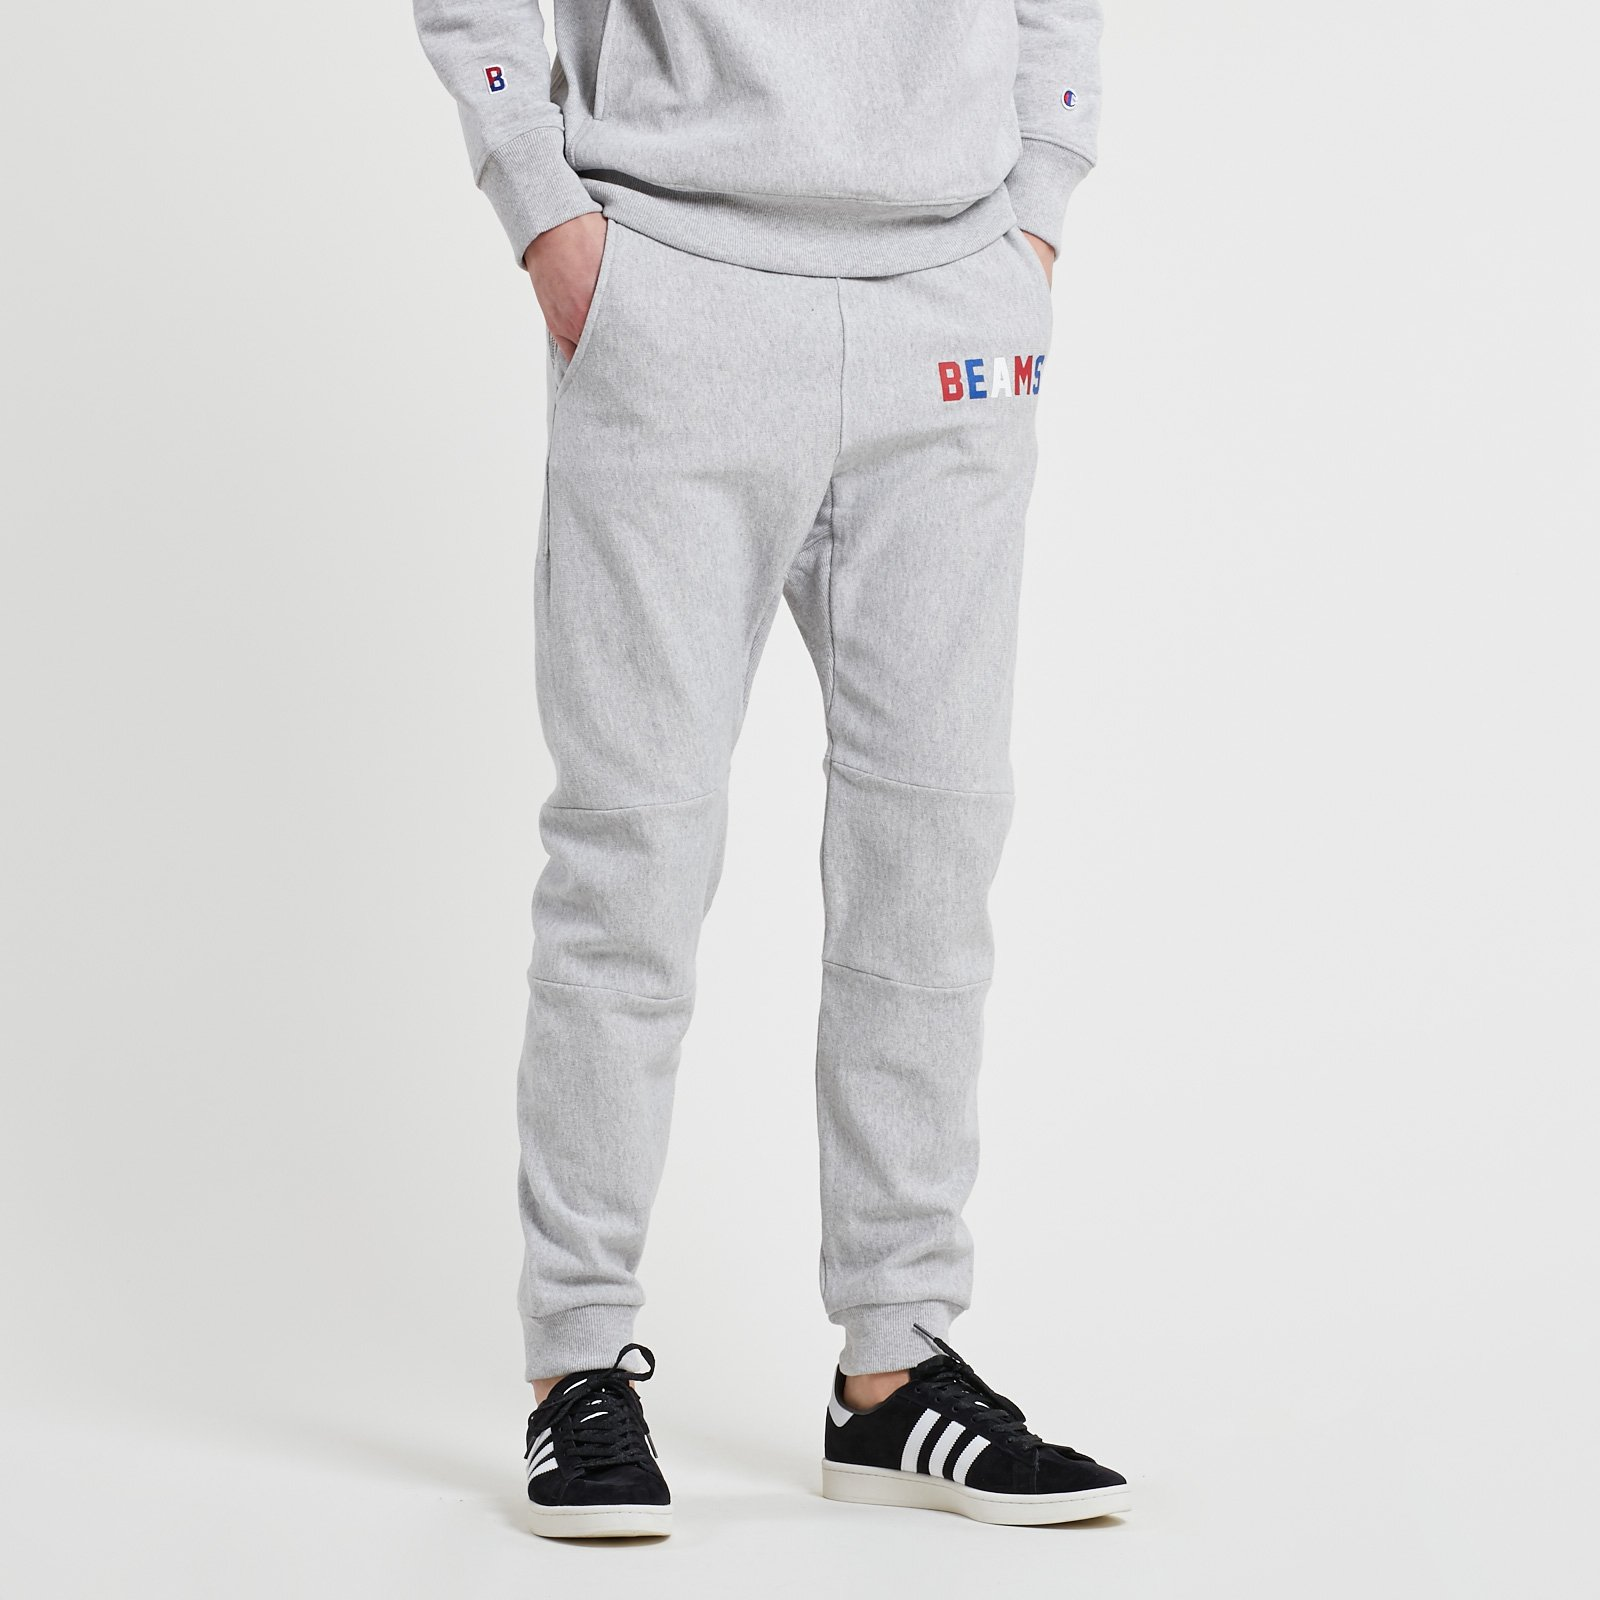 cedb34ffd3c3 Champion Beams Elastic Cuff Pants - 210636-3688 - Sneakersnstuff ...